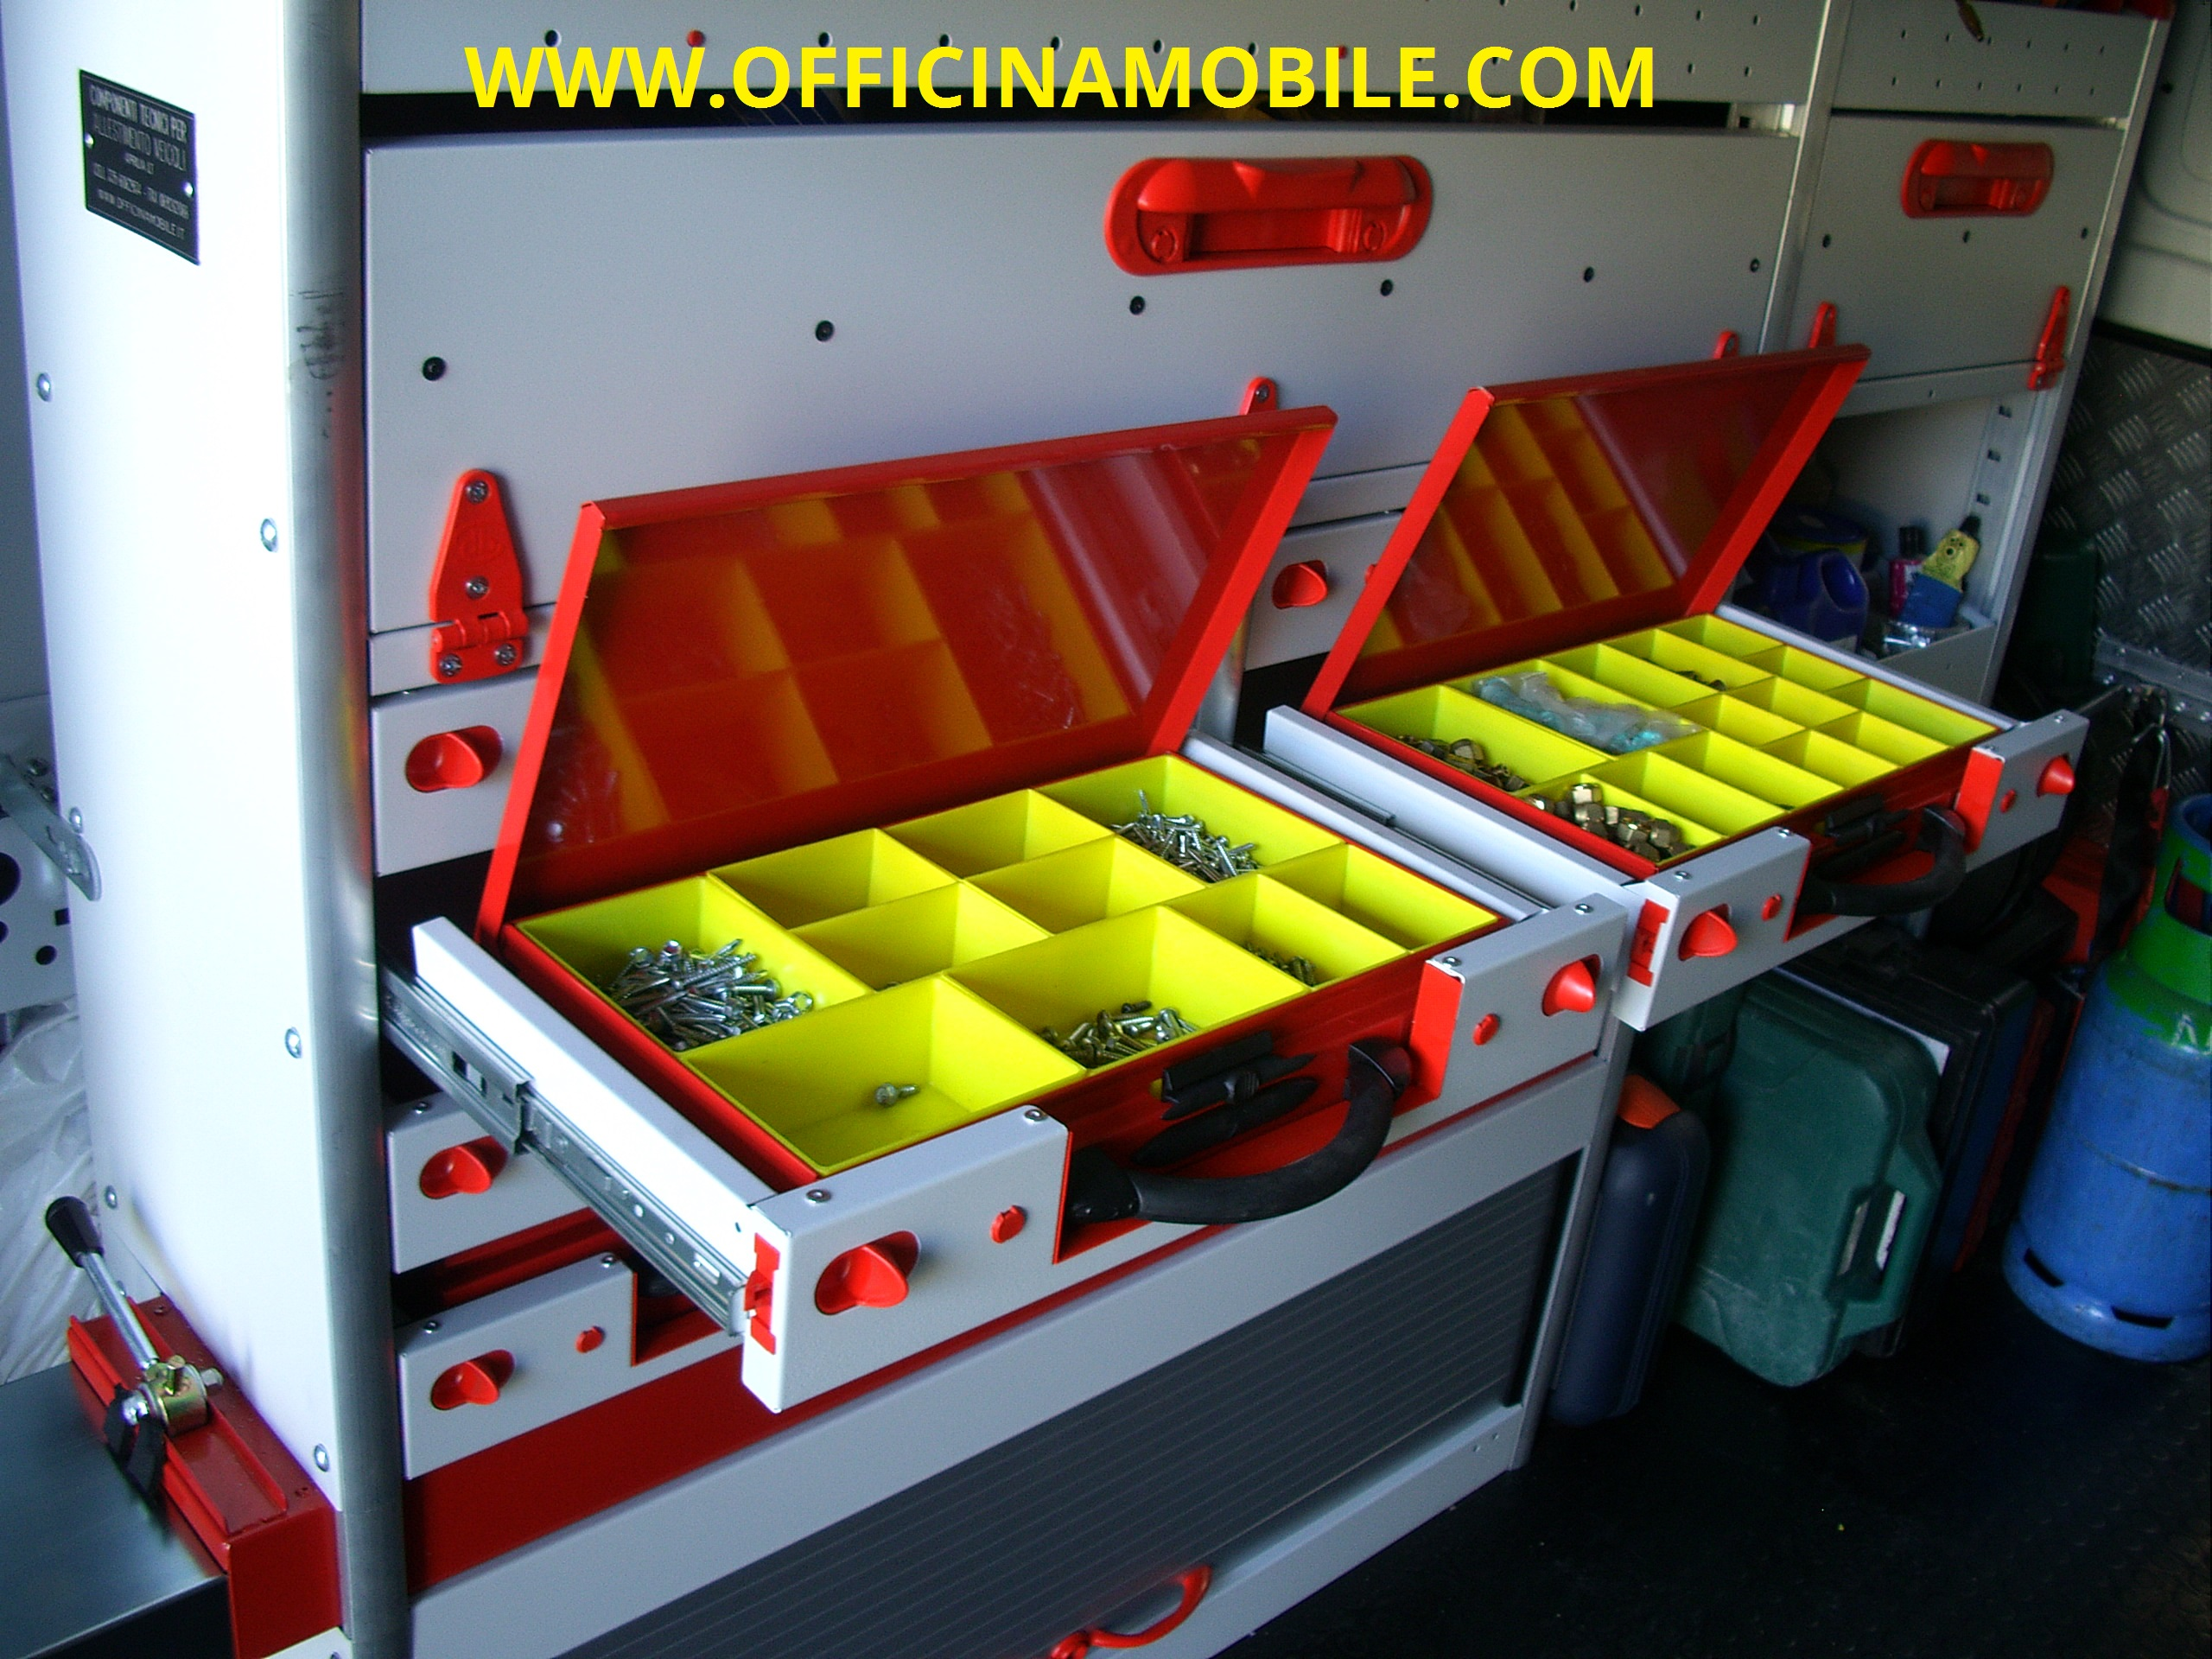 Officina mobile fiat talento